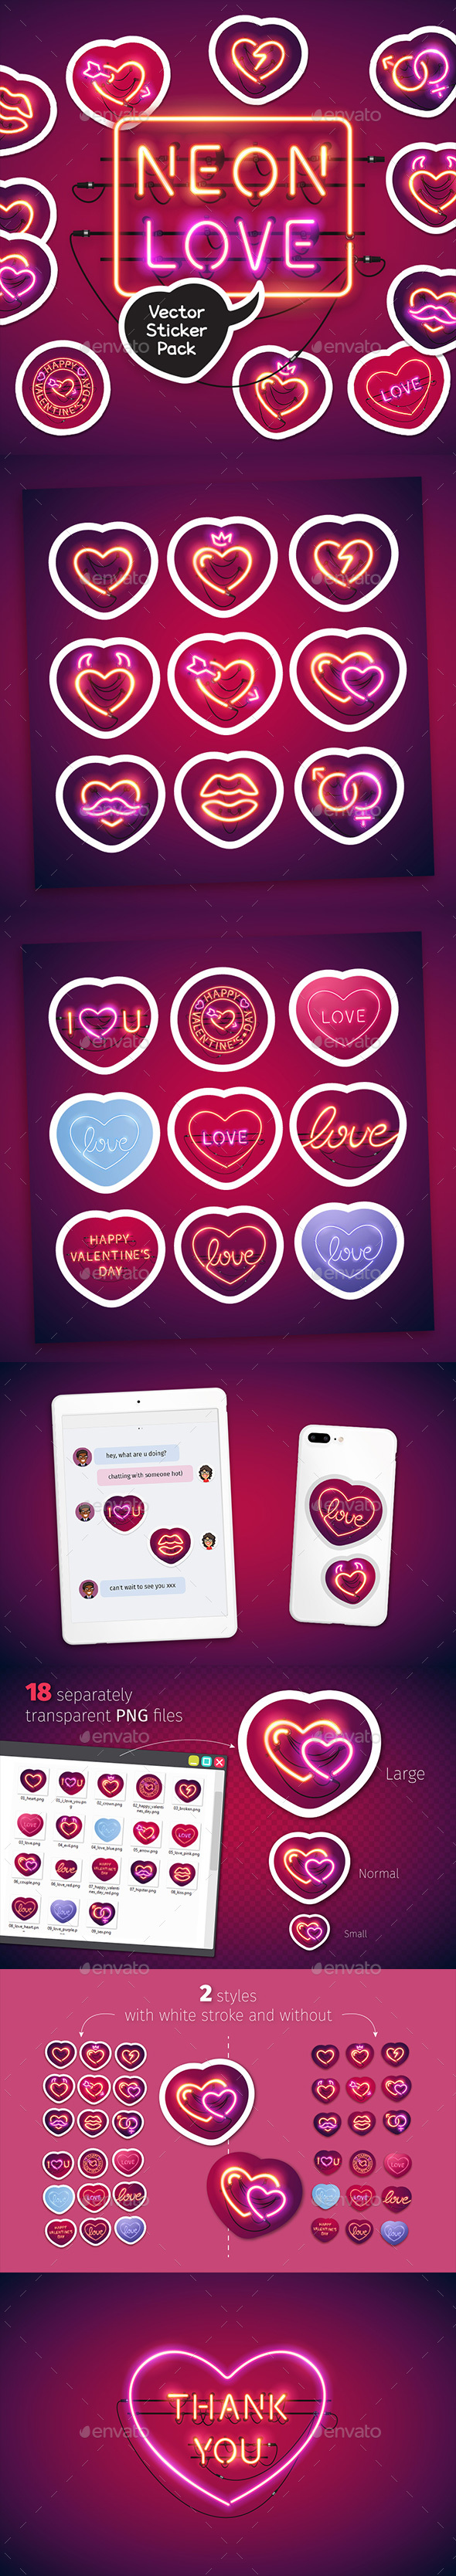 Neon Valentine's Day Sticker Icons Pack - Miscellaneous Icons